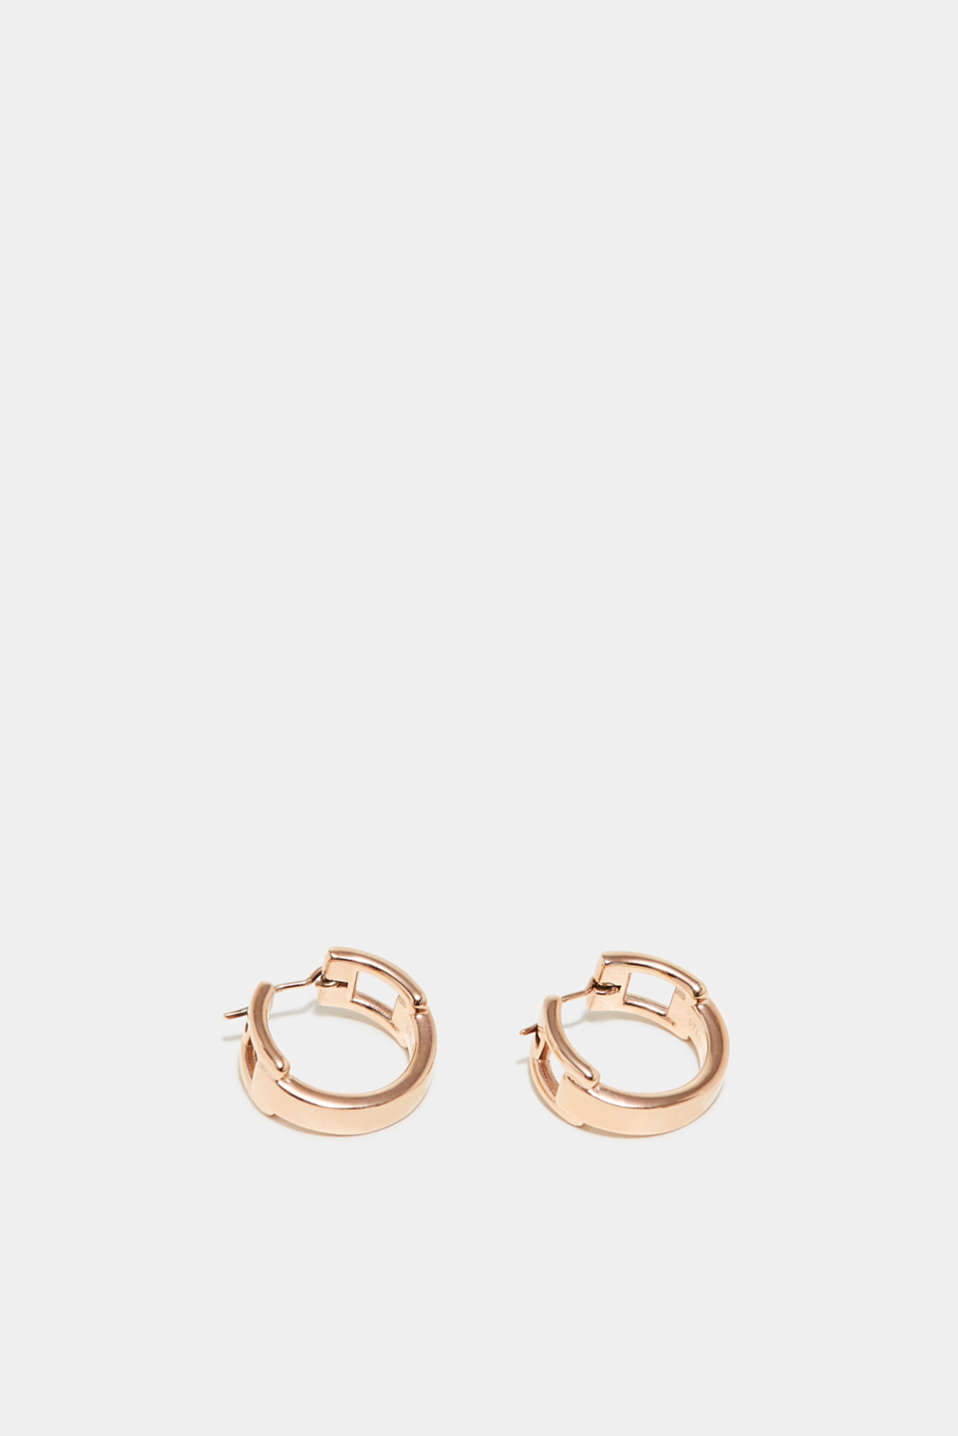 Esprit - Rose gold hoop earrings in stainless steel